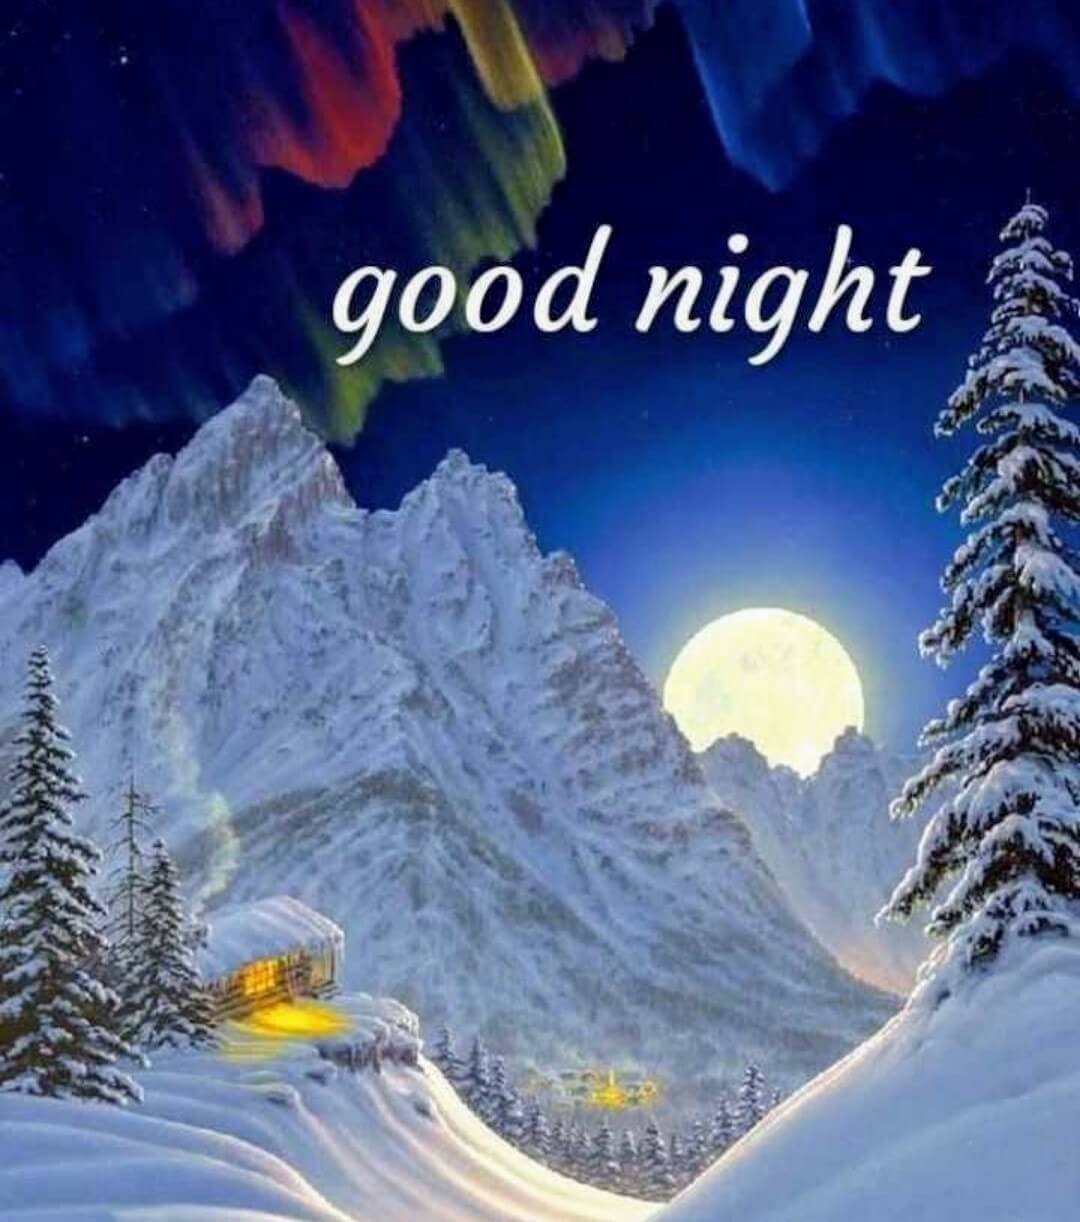 Good Night Image With Love Couple Good Night Hd Good Good Night Winter Images Hd 2448760 Hd Wallpaper Backgrounds Download